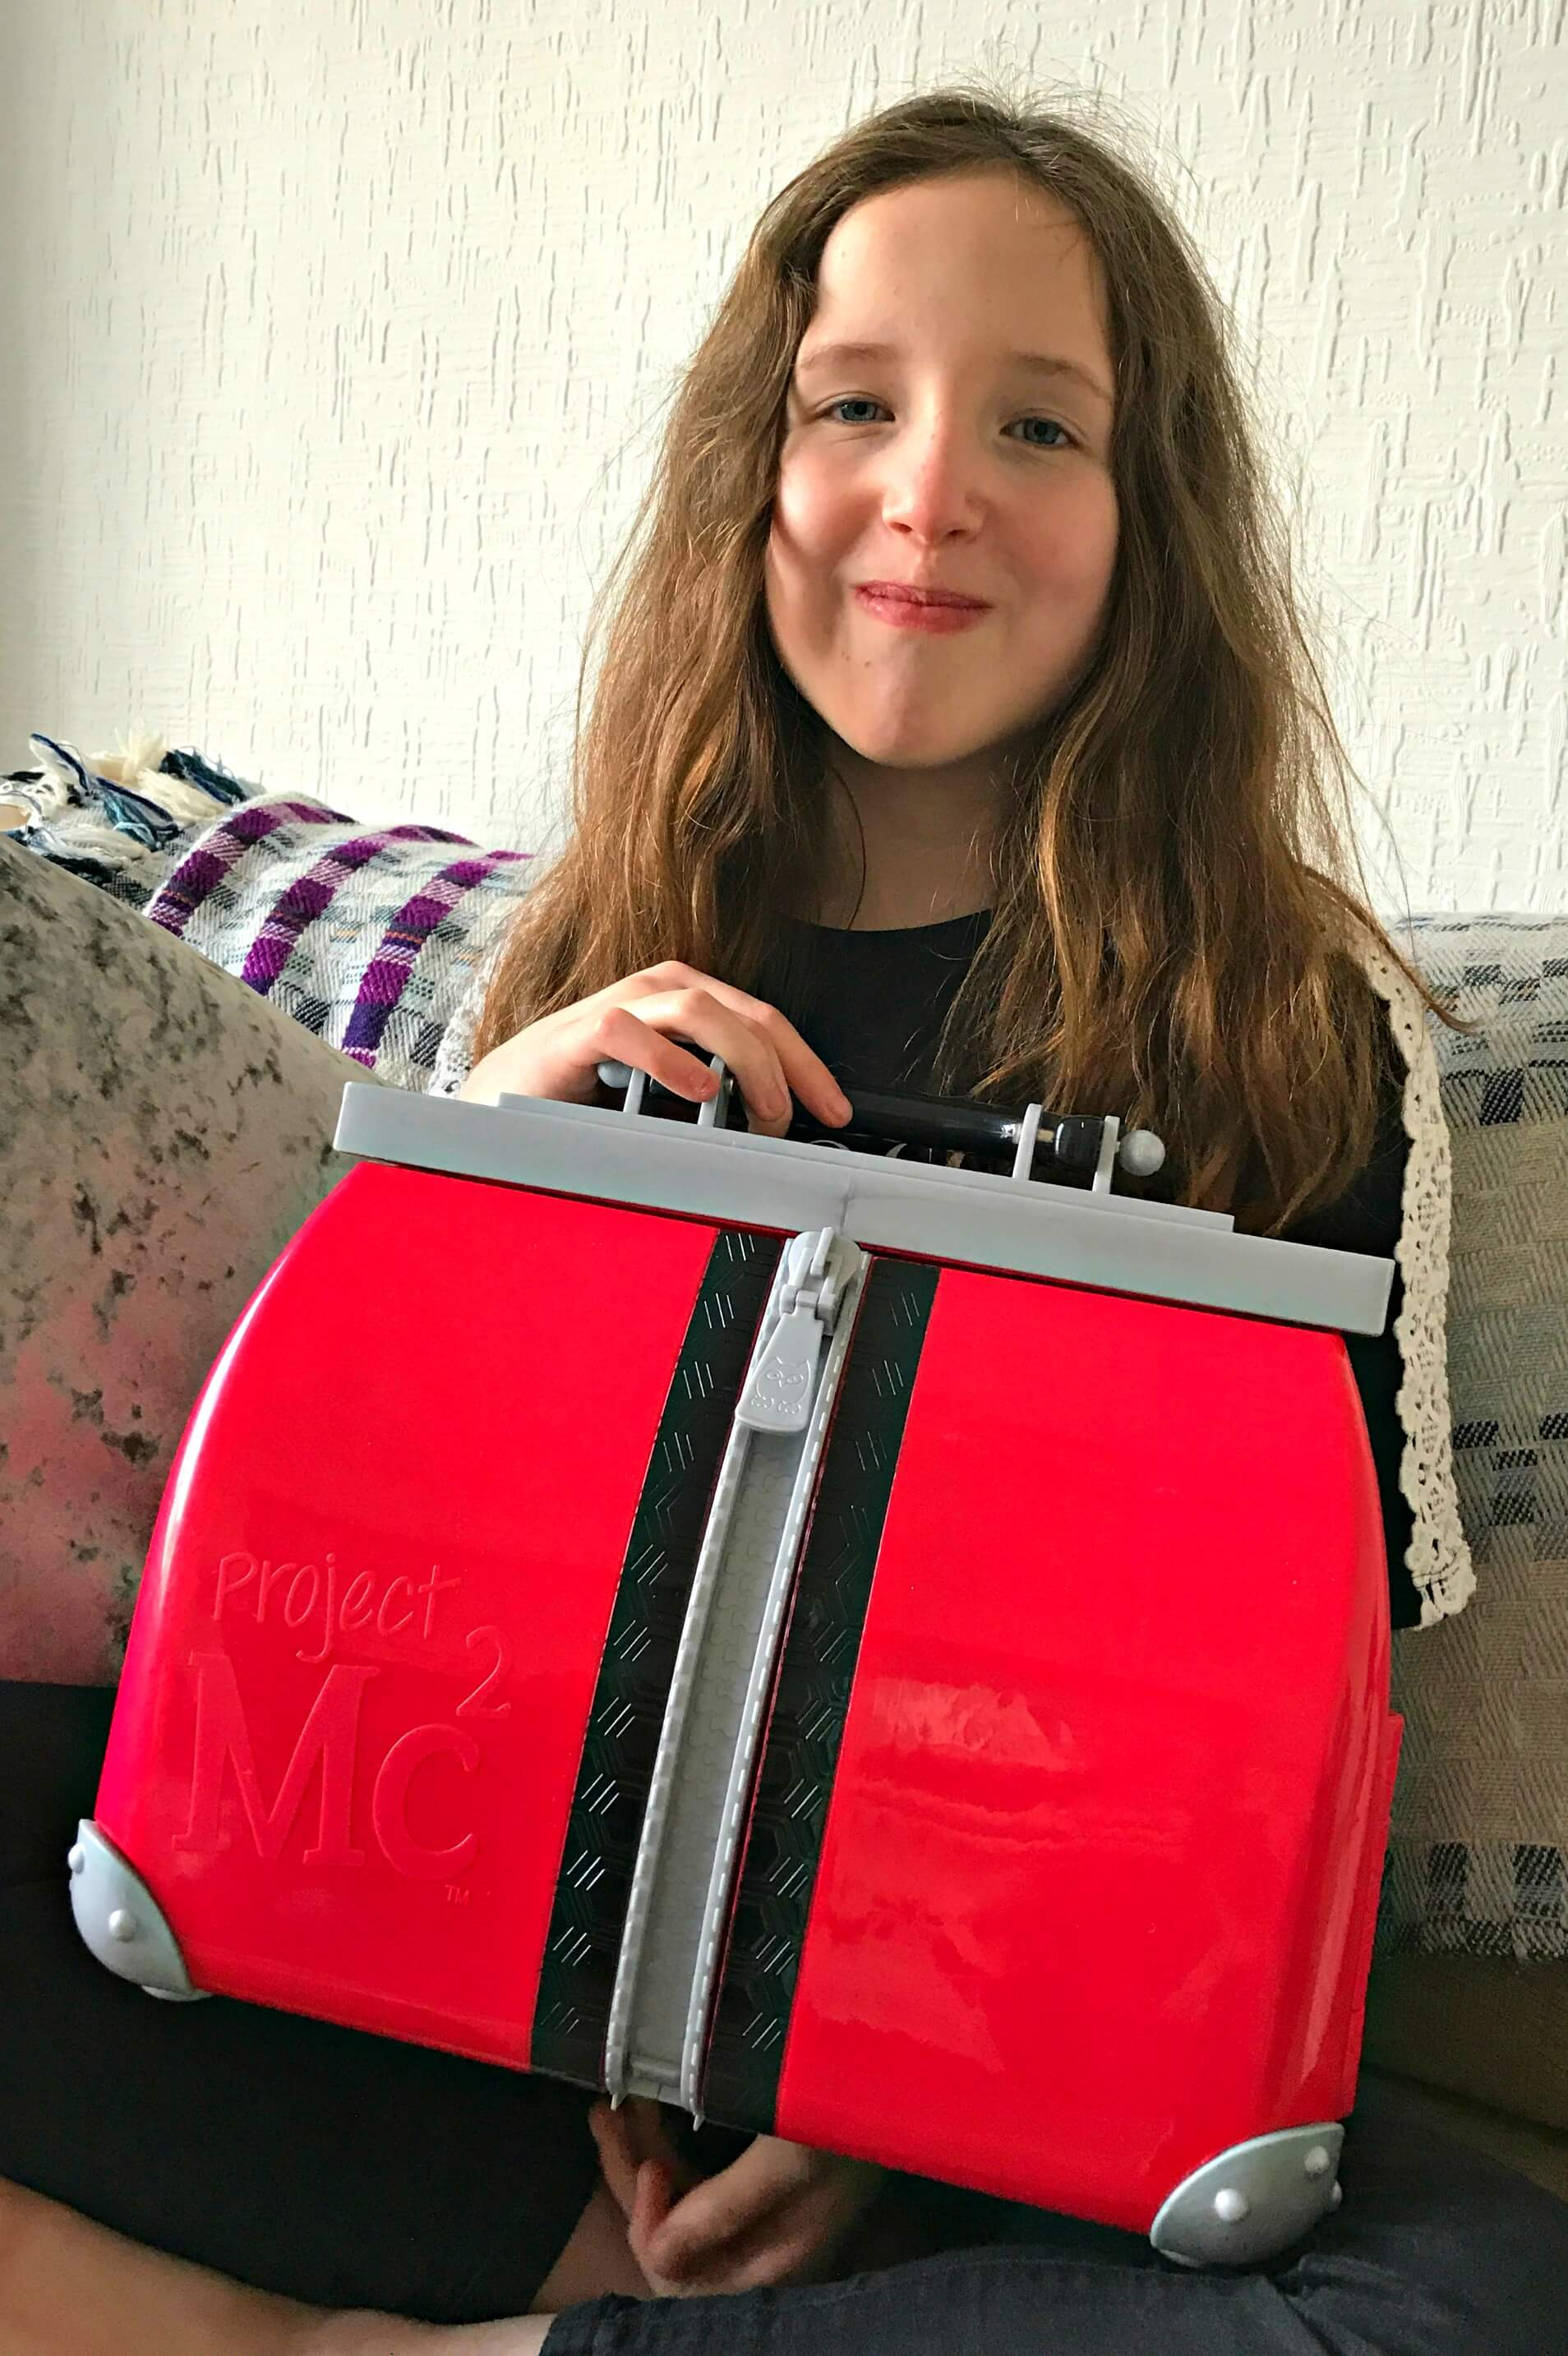 Caitlin holding the red Project mc2 ultimate lab kit bag